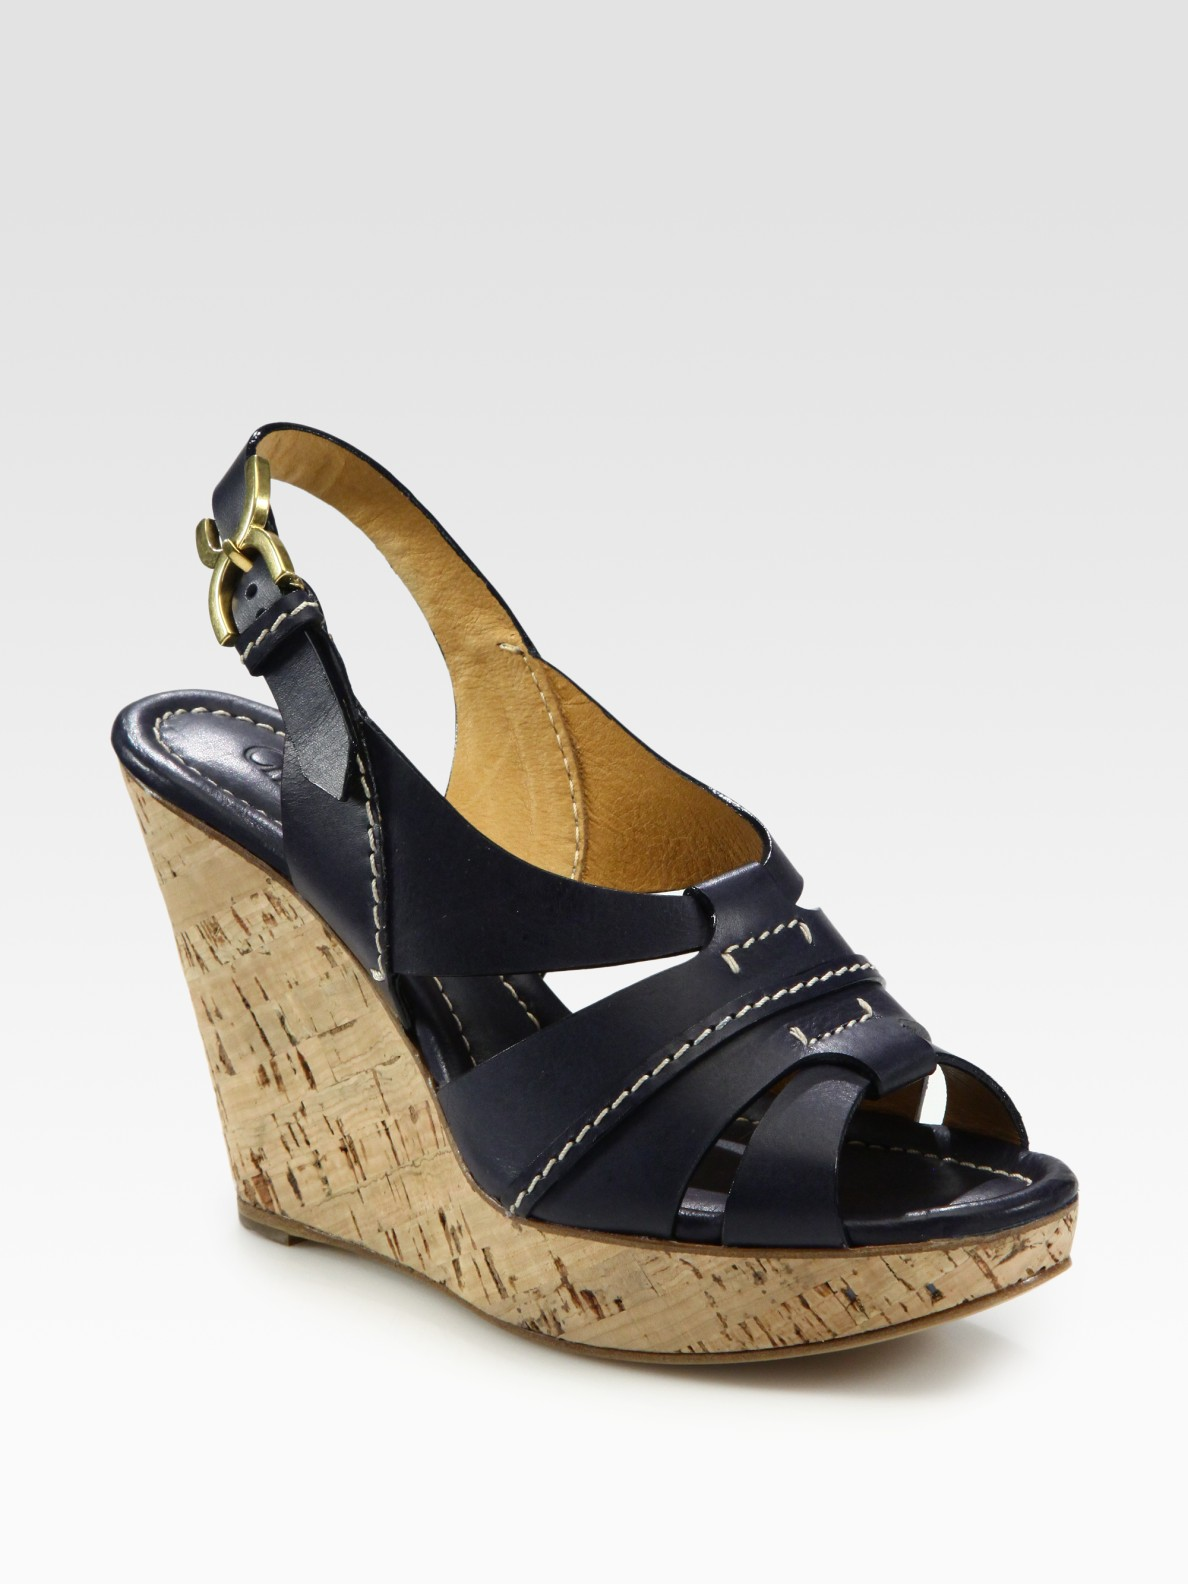 Chlo 233 Leather Slingback Cork Wedge Sandals In Blue Navy